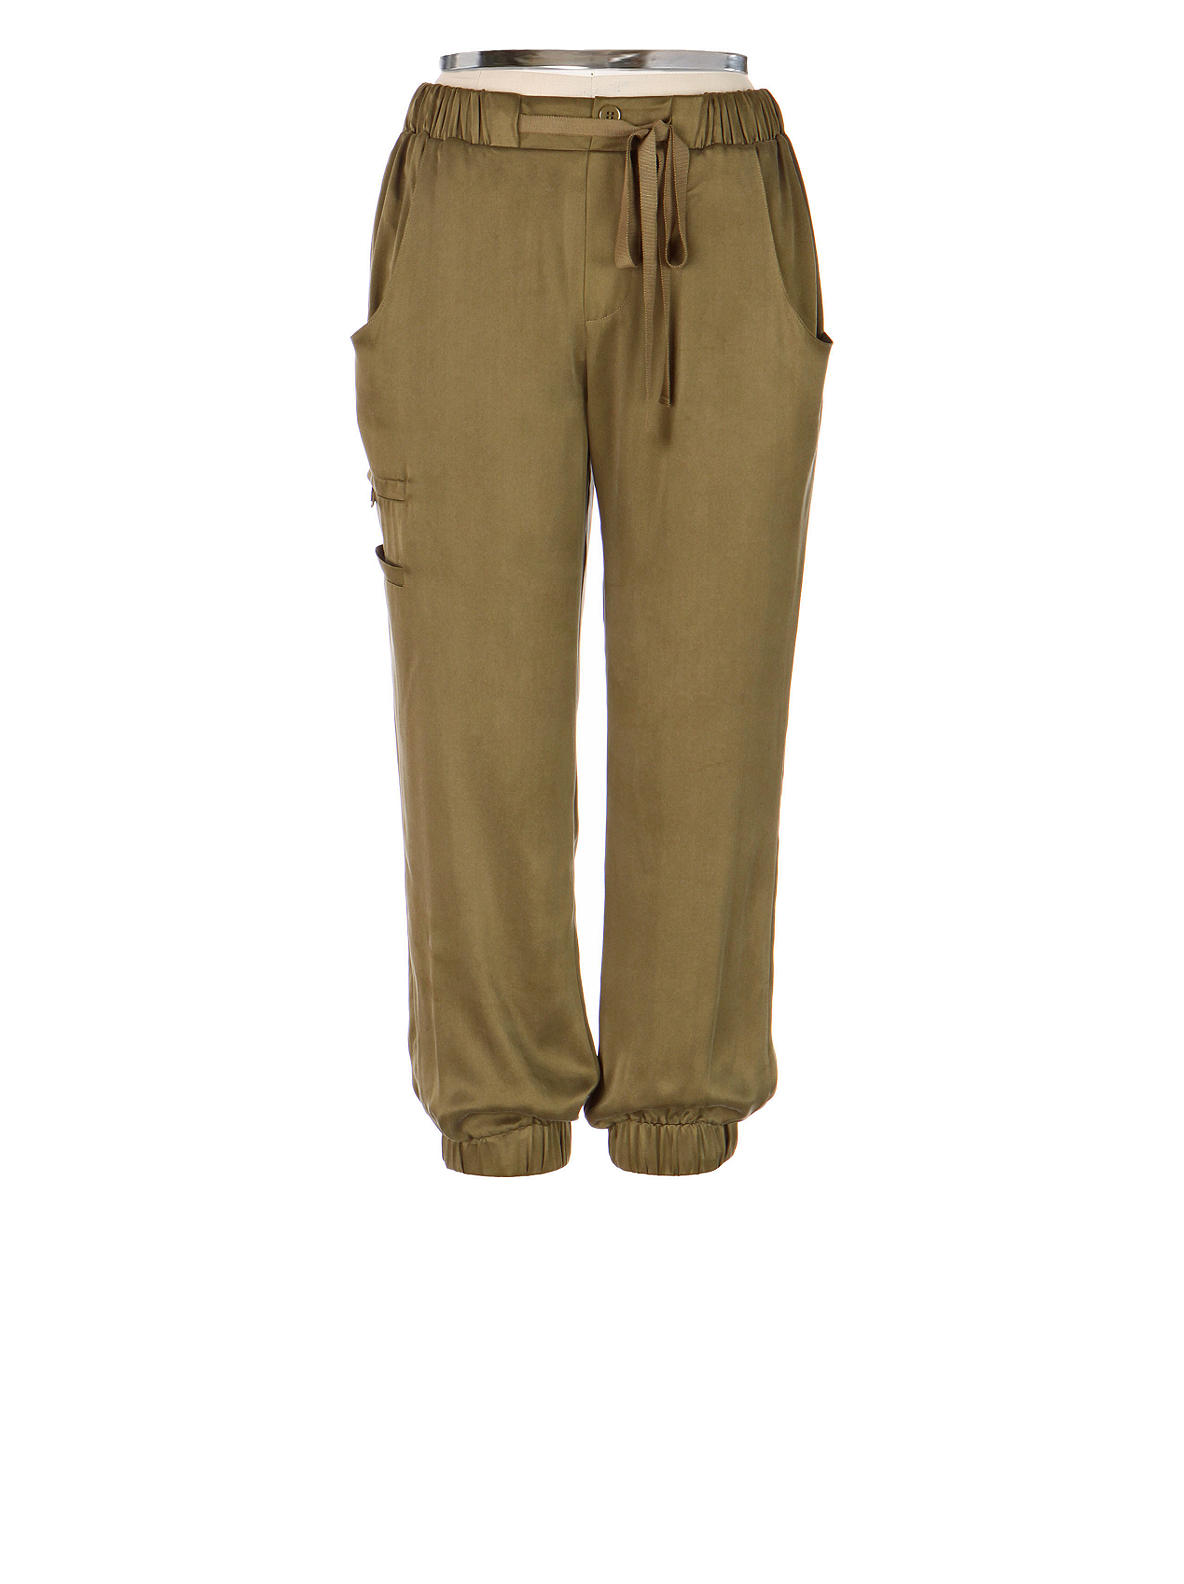 Wispy Cargo Pants - Anthropologie.com :  cropped silk poleci cargo pants